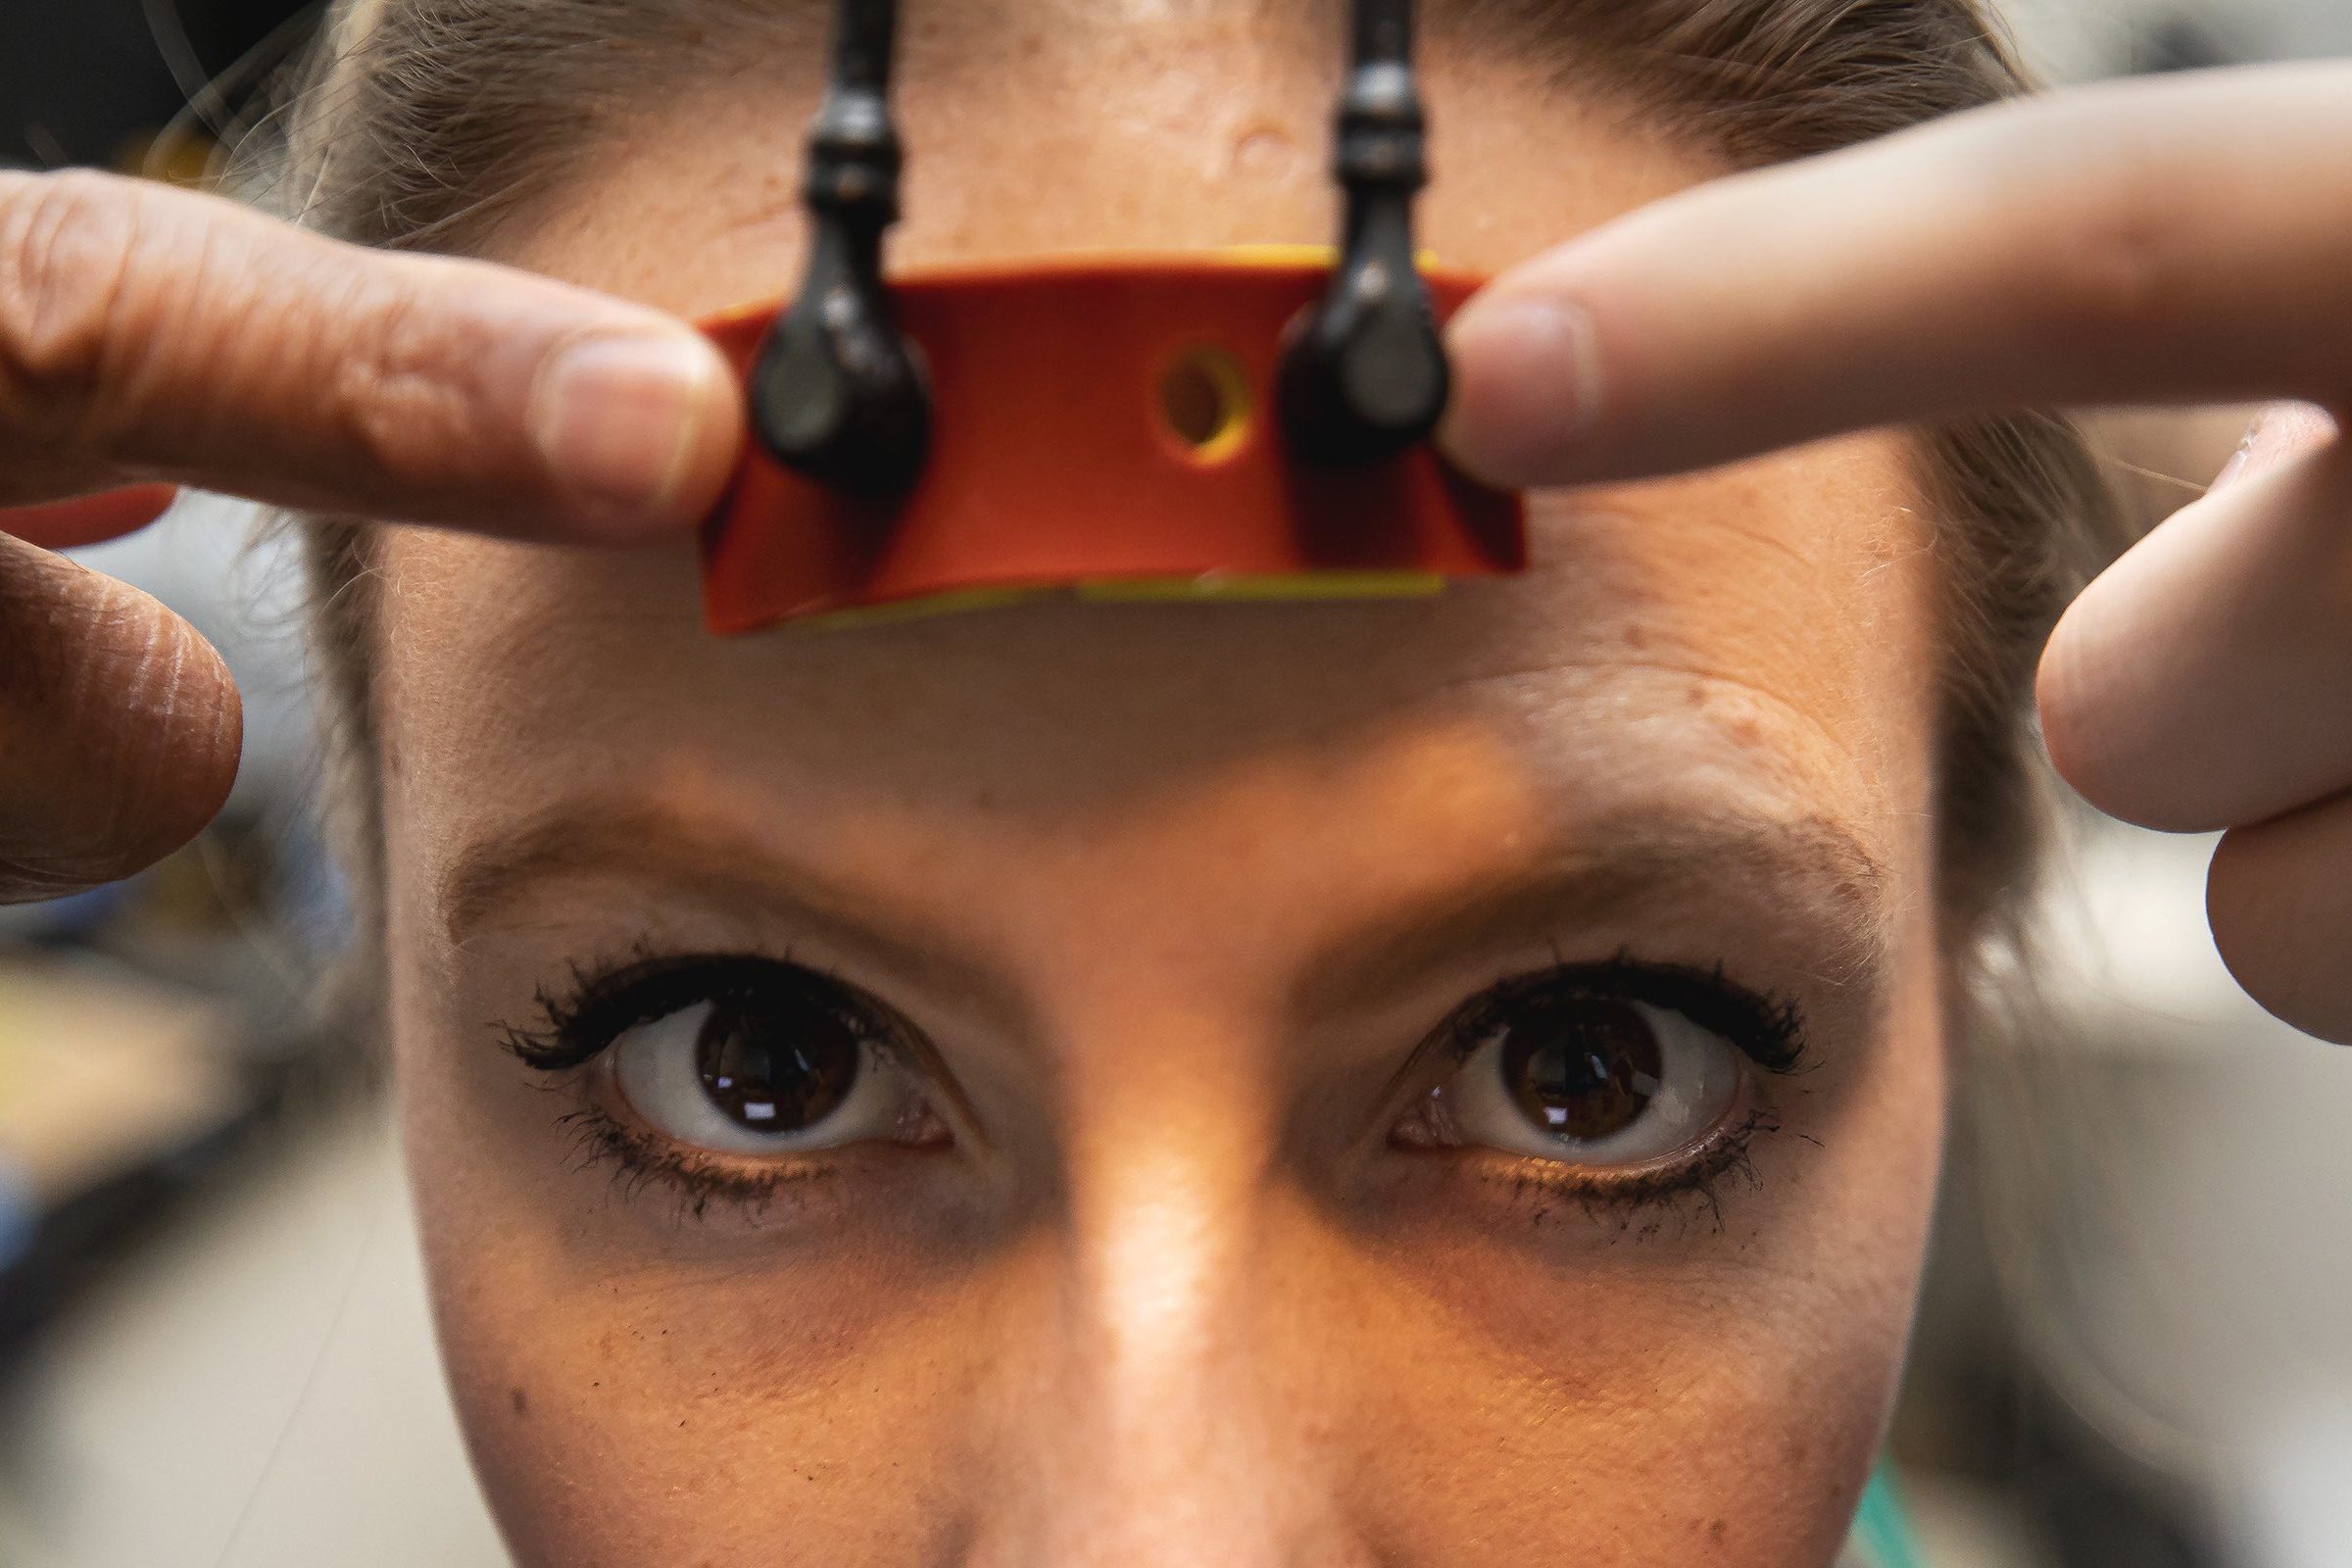 Woman with portable concussion detector device on her forehead